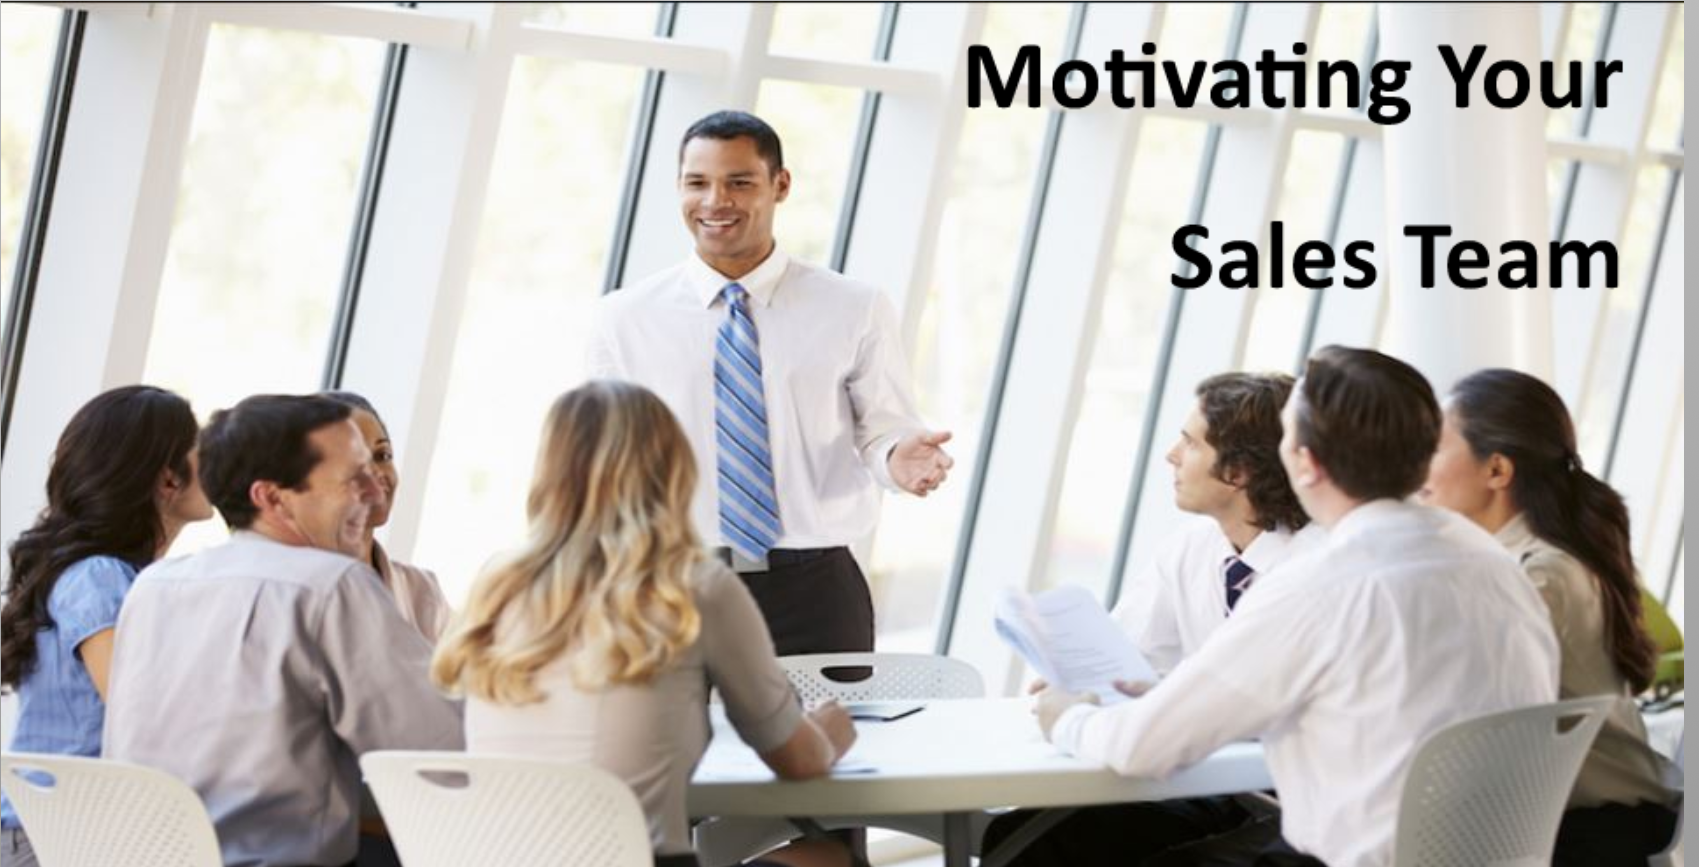 Motivating your Sales Team